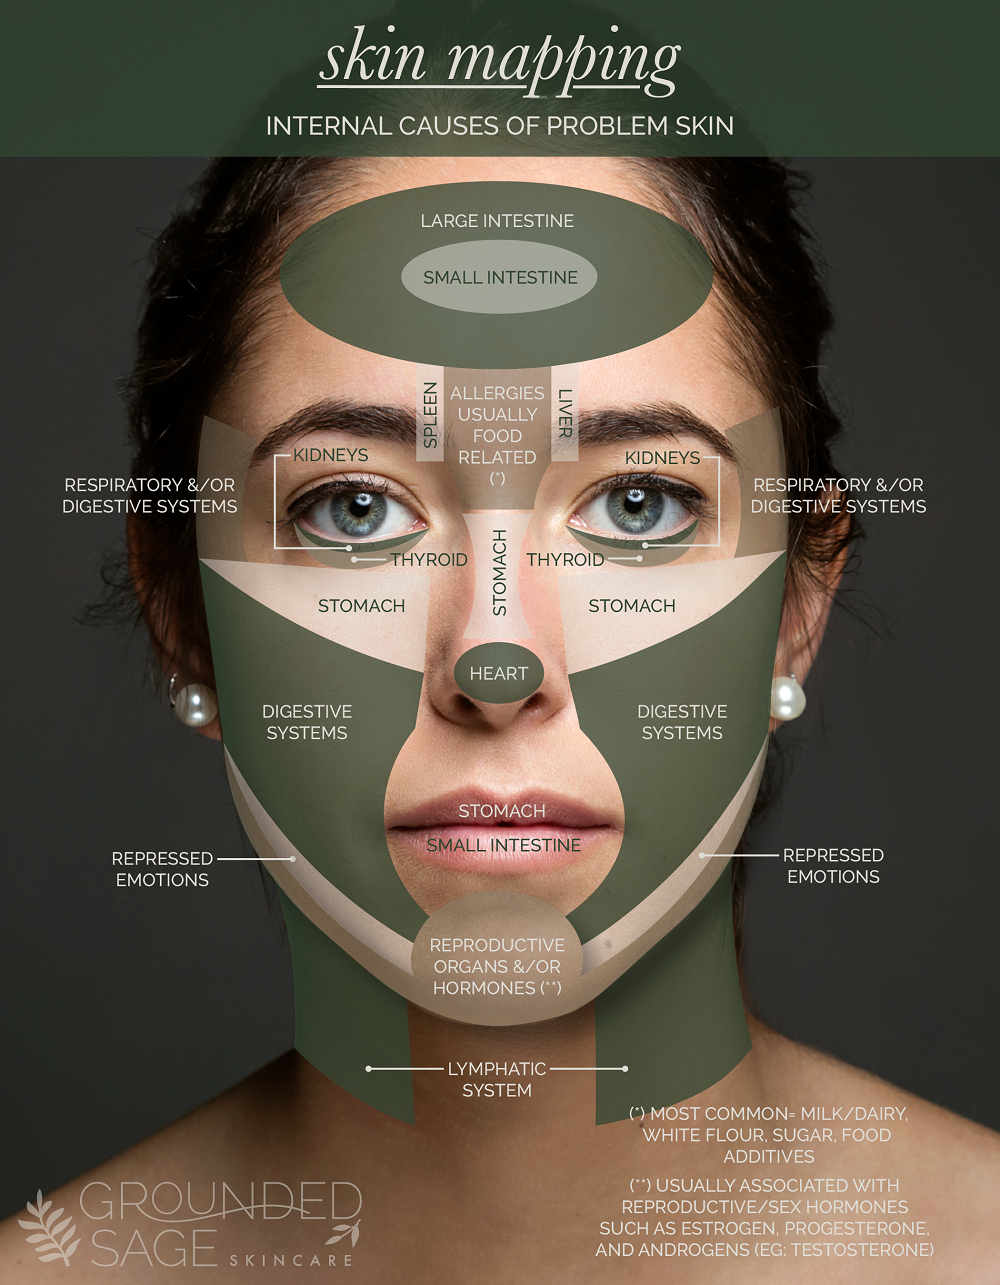 Skin Mapping Chart Pinpoint Internal Causes Of Problem Skin